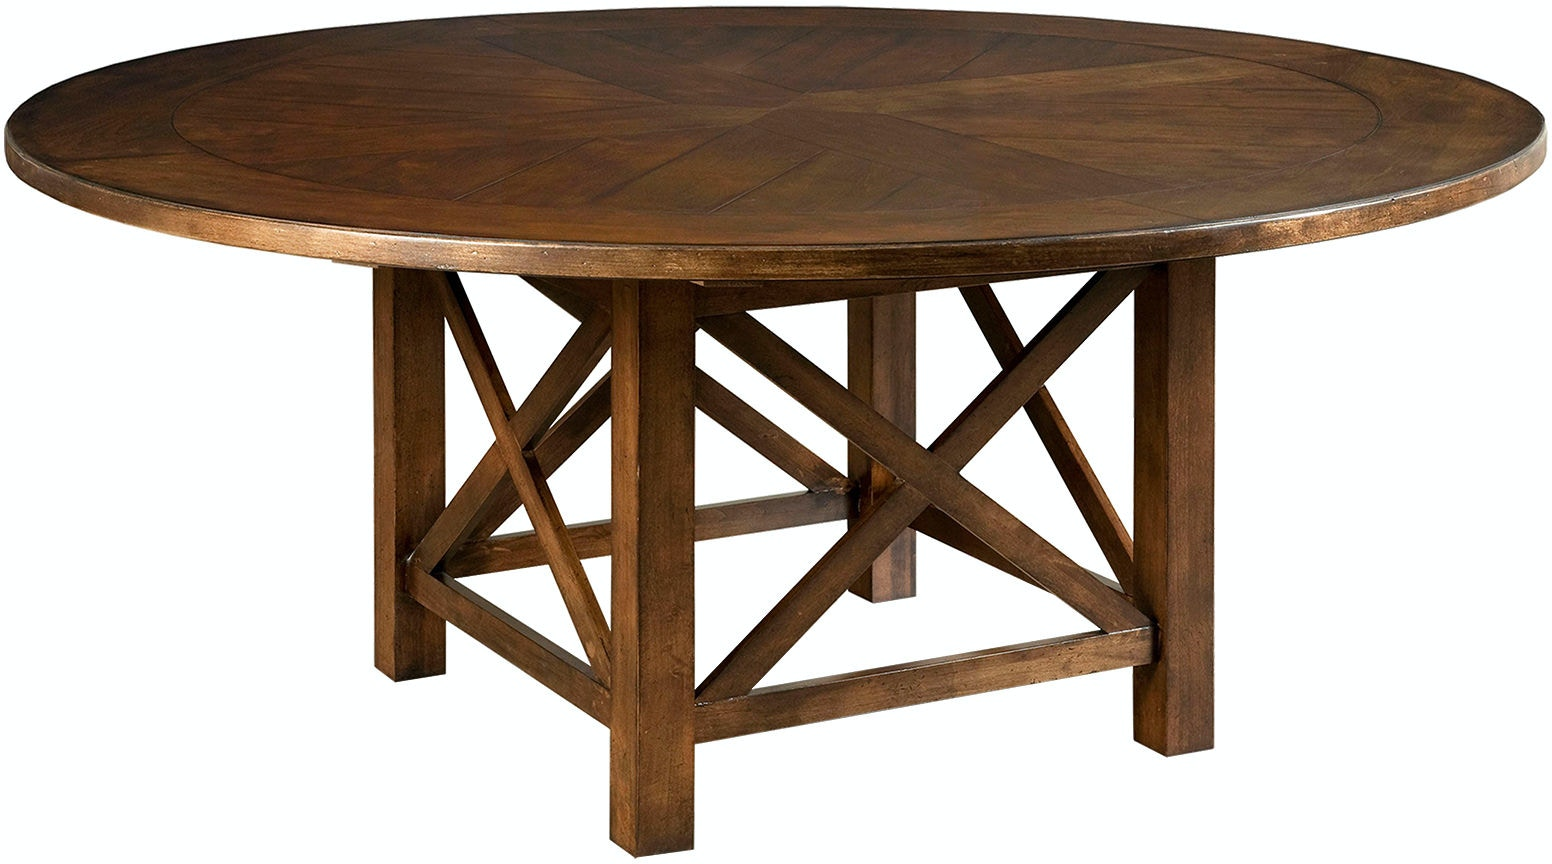 Drexel Dining Room Well Round Dining Table Wood Top 640  : 640 622 623 from www.stowersfurniture.com size 768 x 576 jpeg 30kB